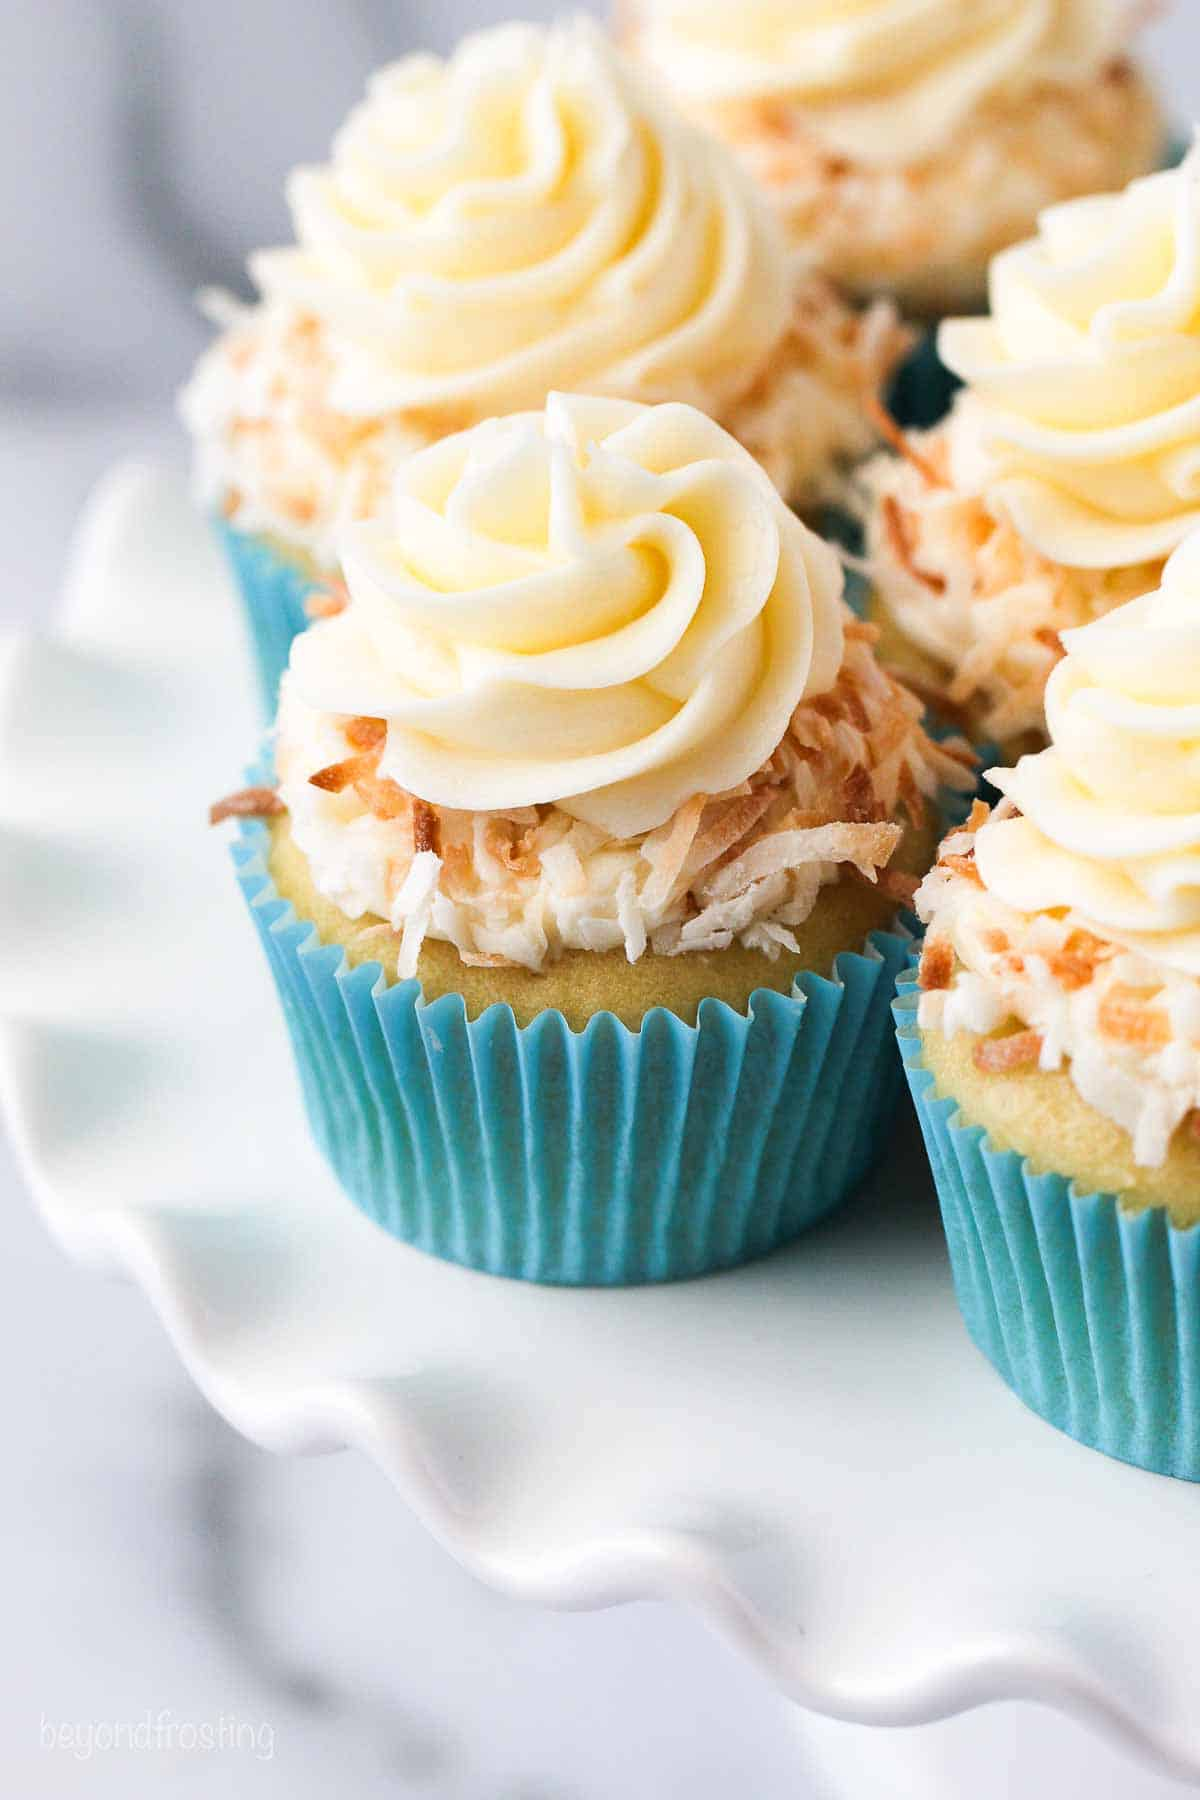 Several coconut cupcakes on a white plate